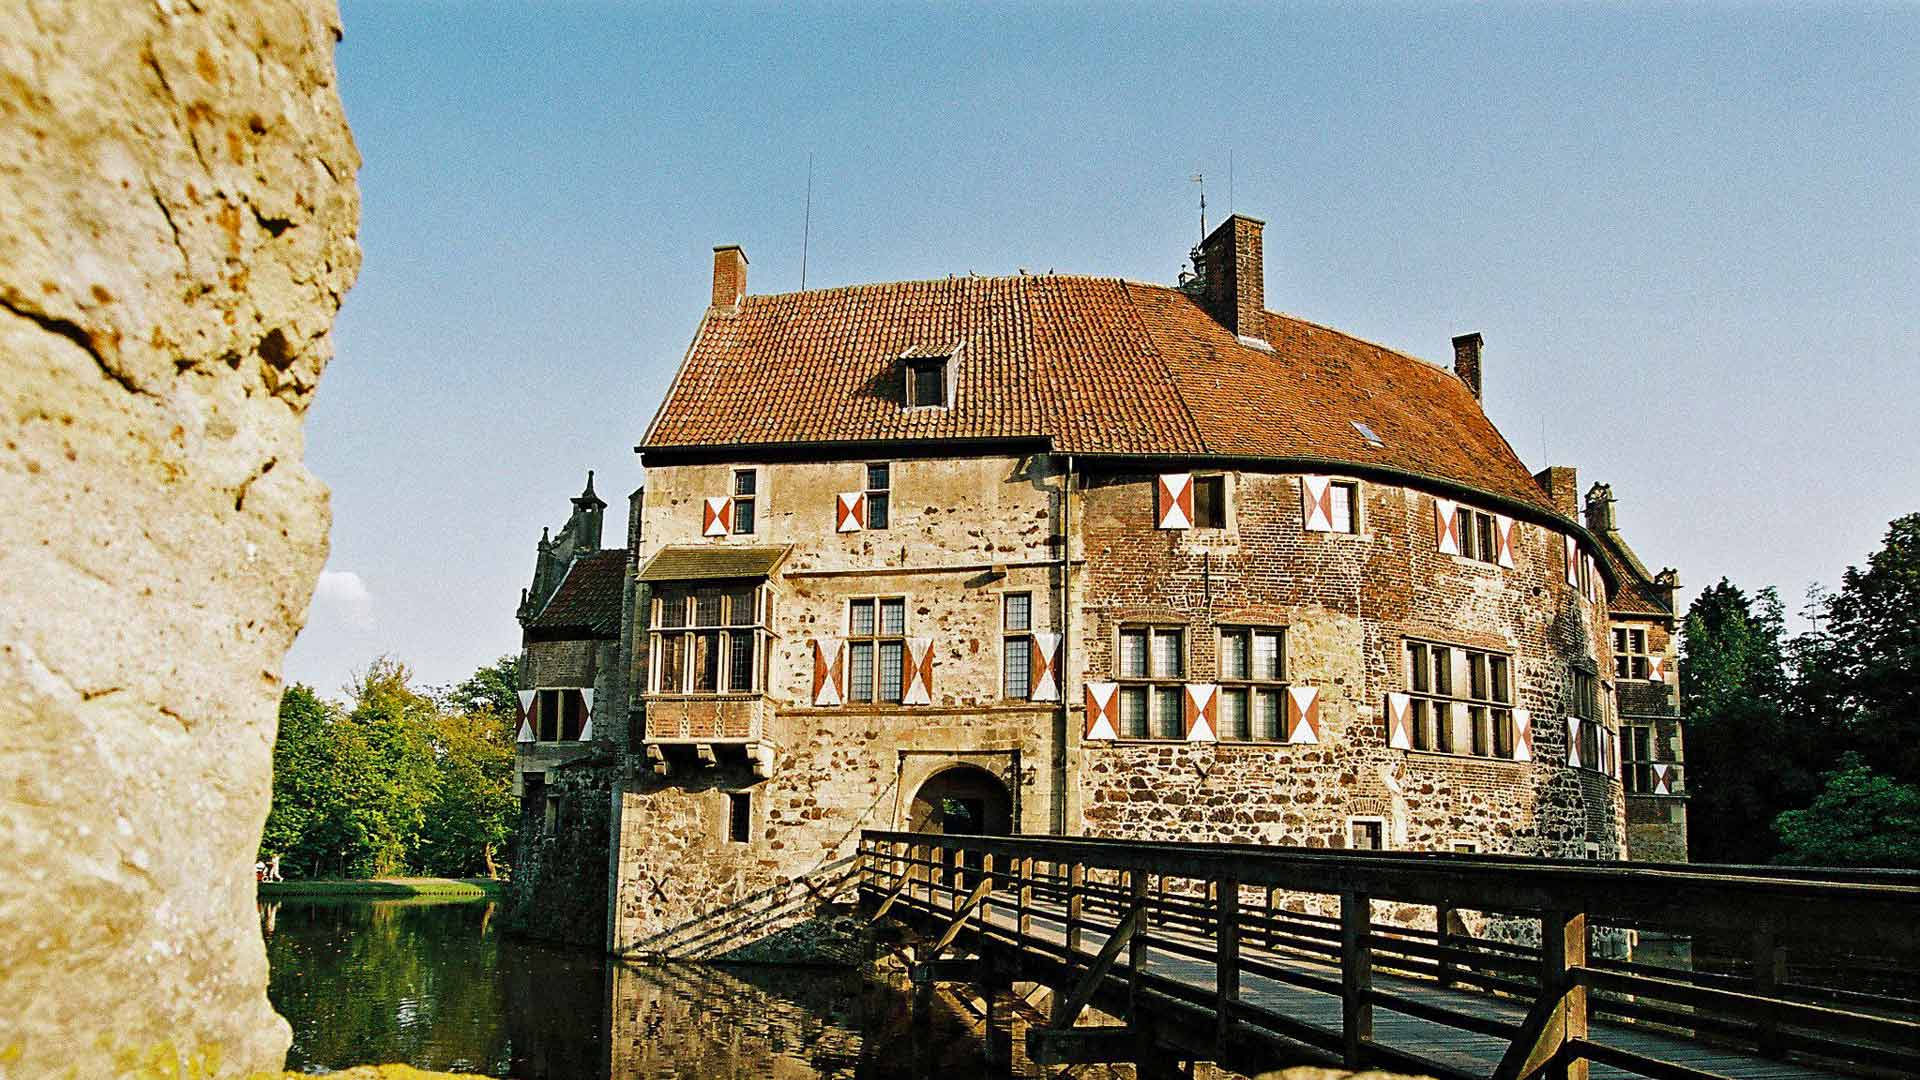 Burg Vischering in Lüdinghausen.